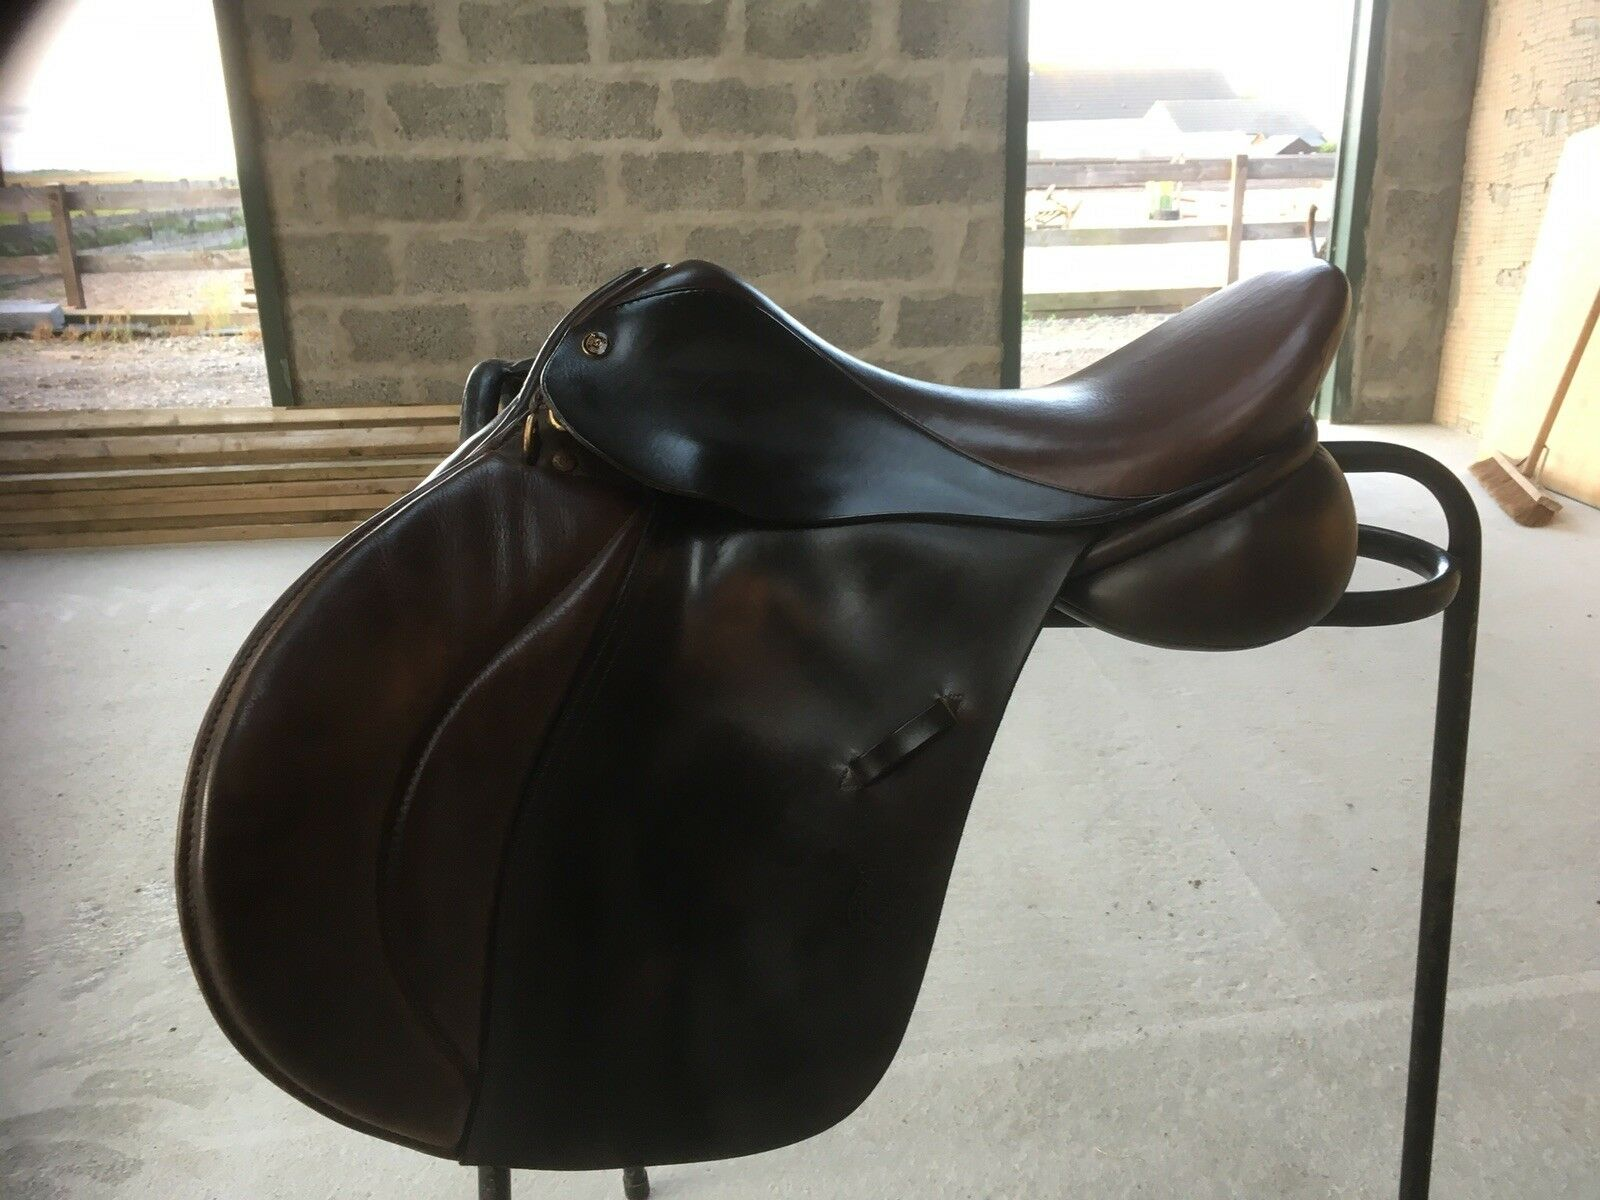 Symonds Olympus High Wither Jumping Saddle